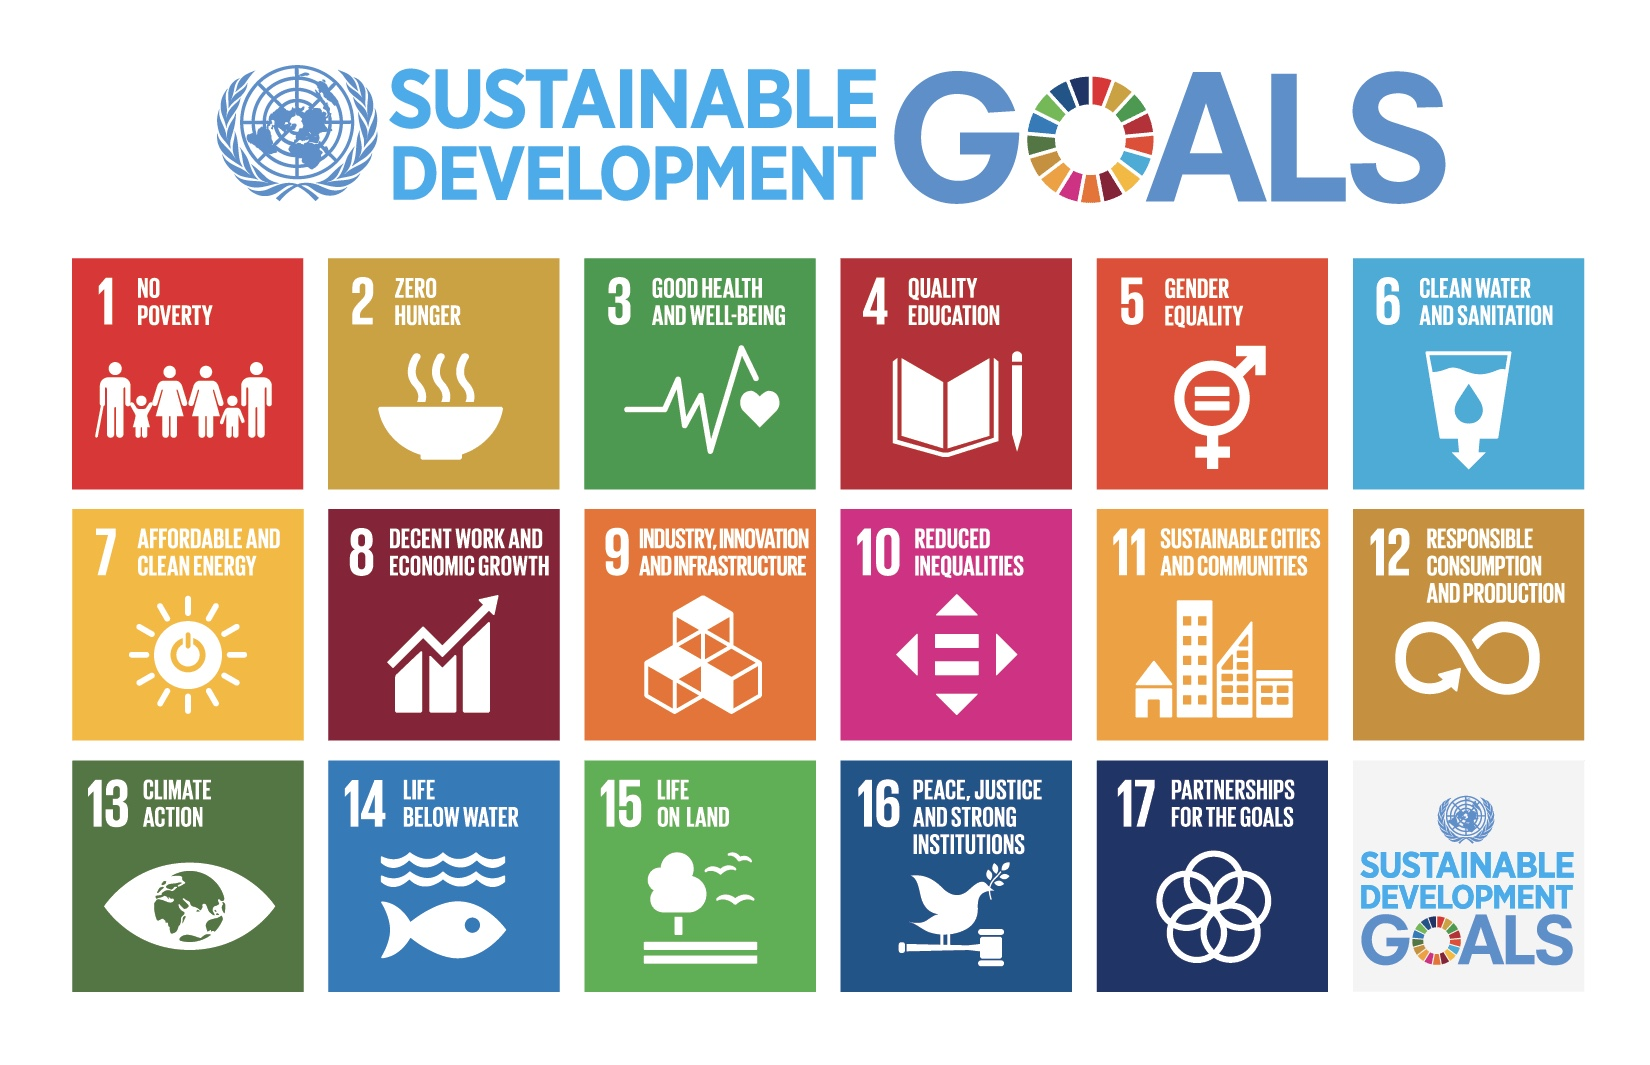 UN SDGs: Goal 1: No Poverty; Goal 2: Zero Hunger; Goal 3: Good Health and Well-Being; Goal 4: Quality Education; Goal 5: Gender Equality; Goal 6: Clean Water and Sanitation; Goal 7: Affordable and Clean Energy; Goal 8: Decent Work and Economic Growth; Goal 9: Industry, Innovation and Infrastructure; Goal 10: Reduced Inequalities; Goal 11: Sustainable Cities and Communities; Goal 12: Responsible Production and Consumption; Goal 13: Climate Action; Goal 14: Life Below Water; Goal 15: Life On Land; Goal 16: Peace, Justice and Strong Institutions; Goal 17: Partnerships for the Goals.